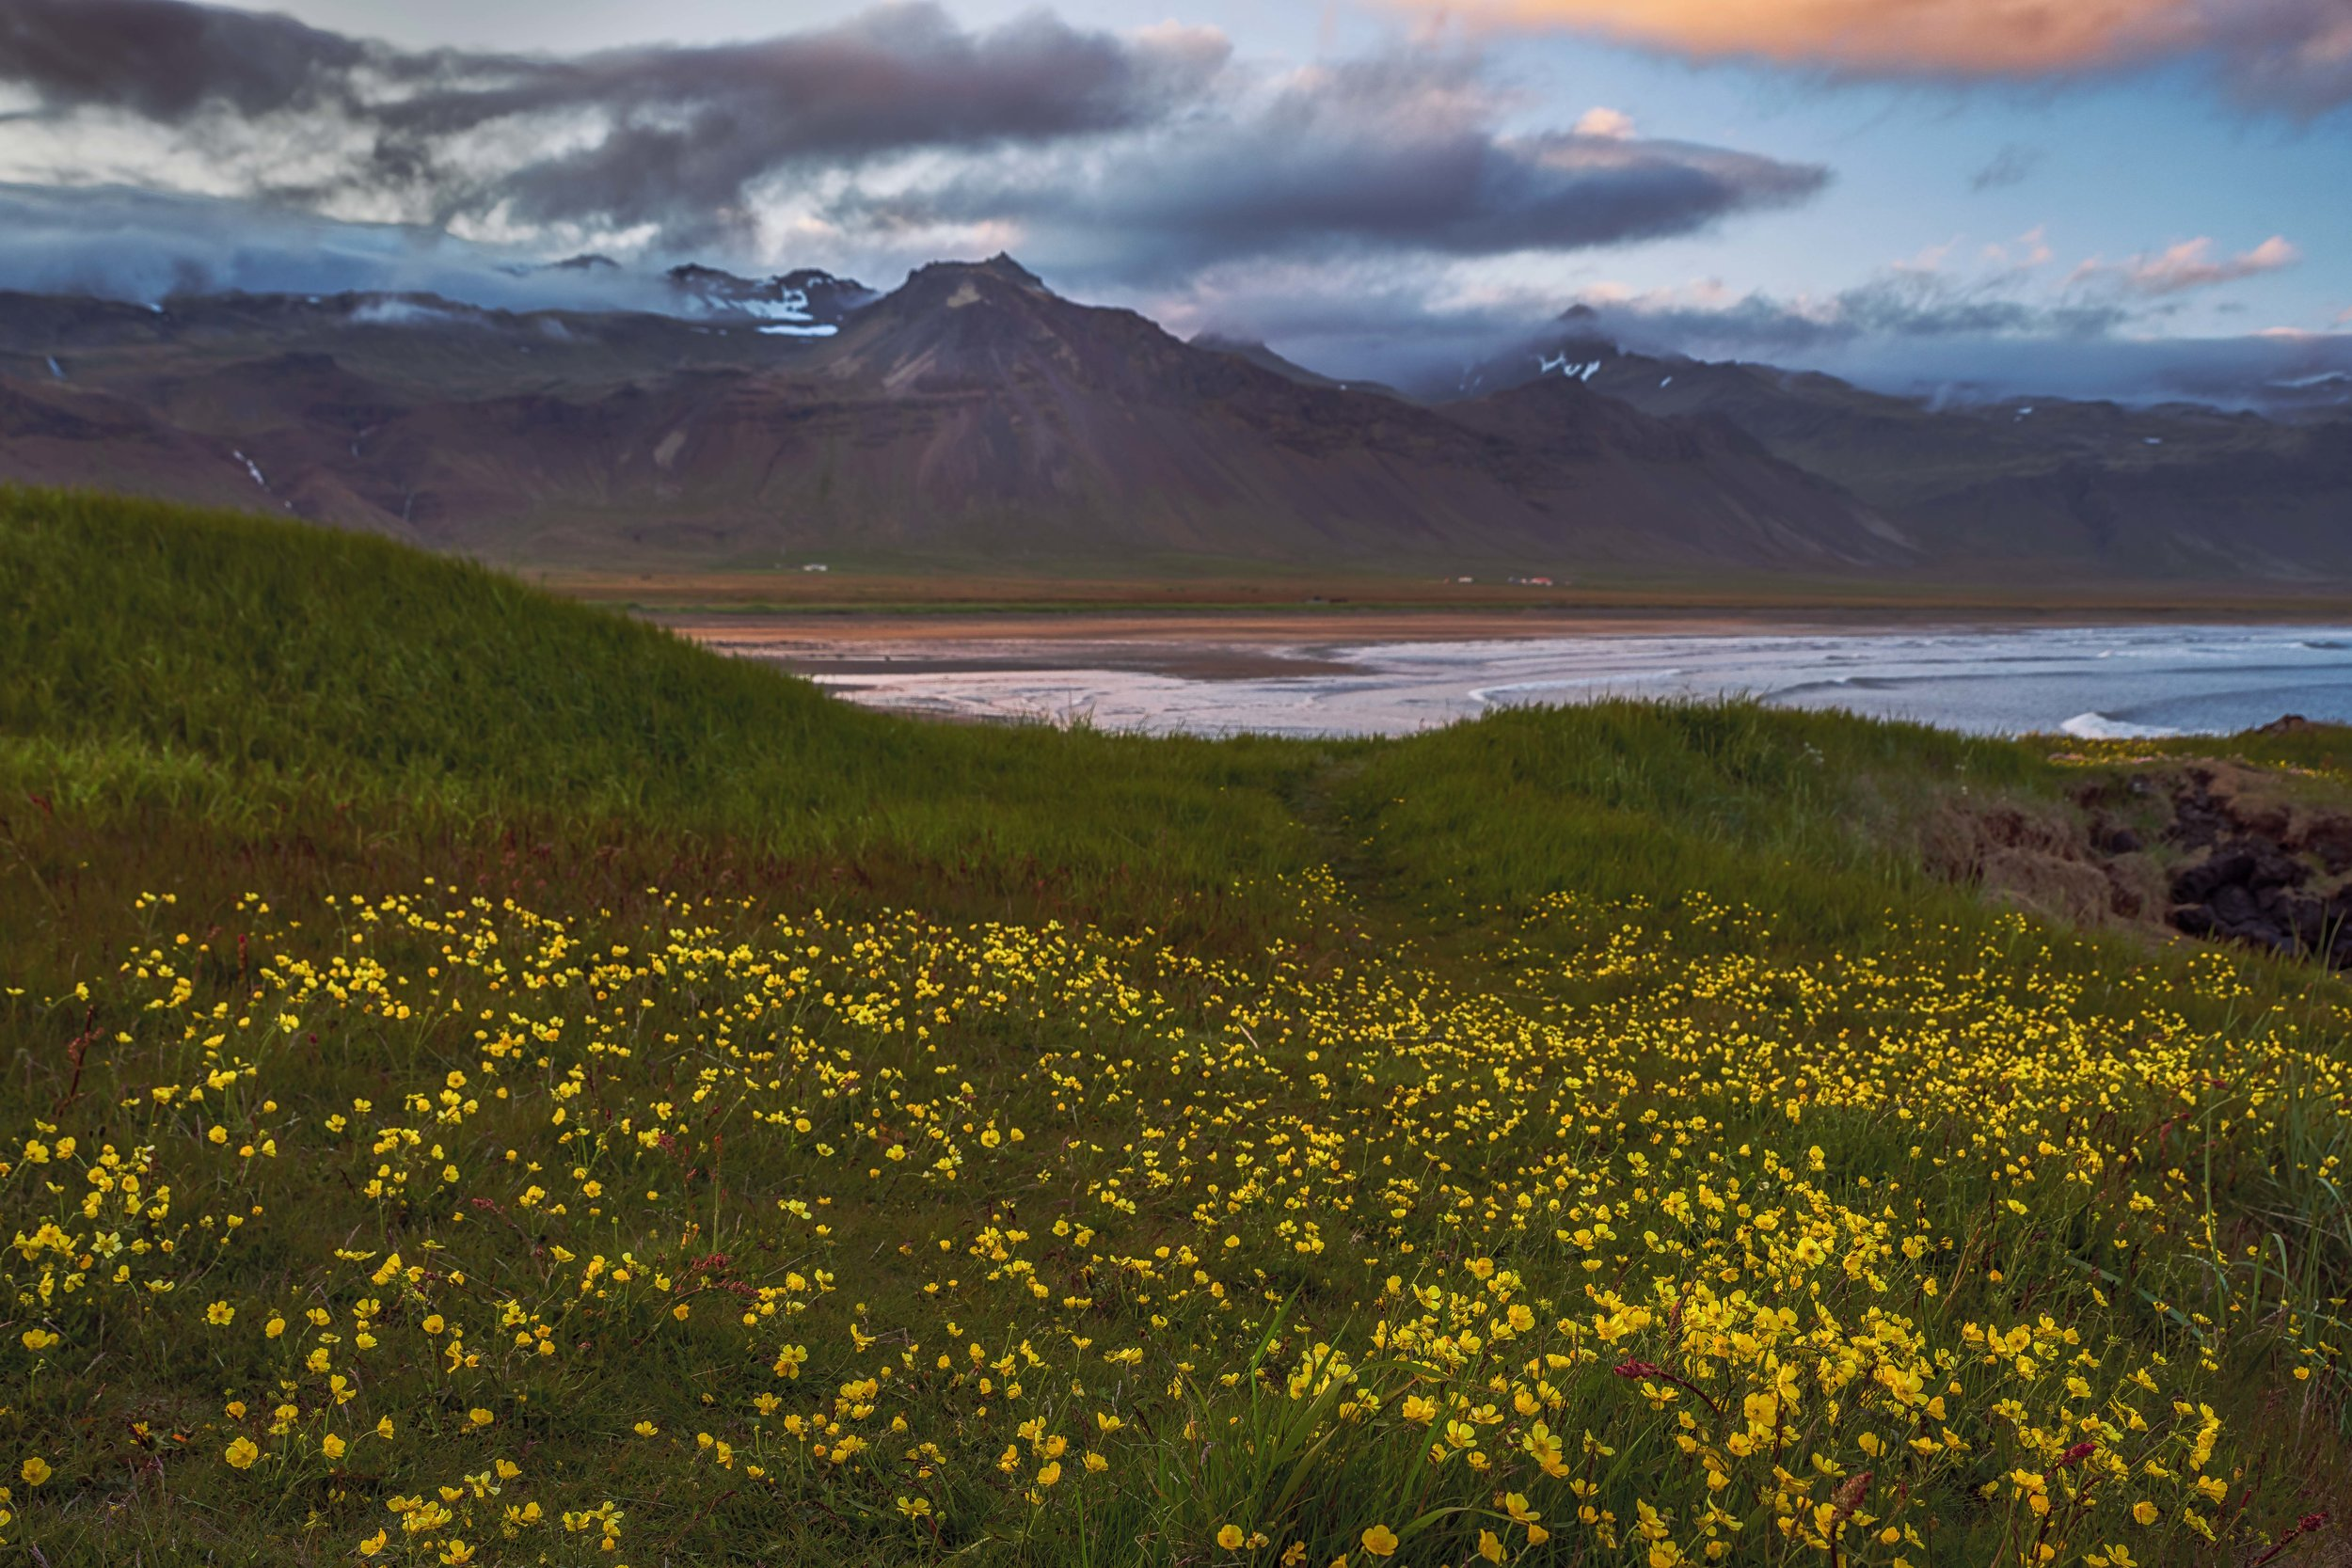 Wildflowers, sea, mountains and clouds